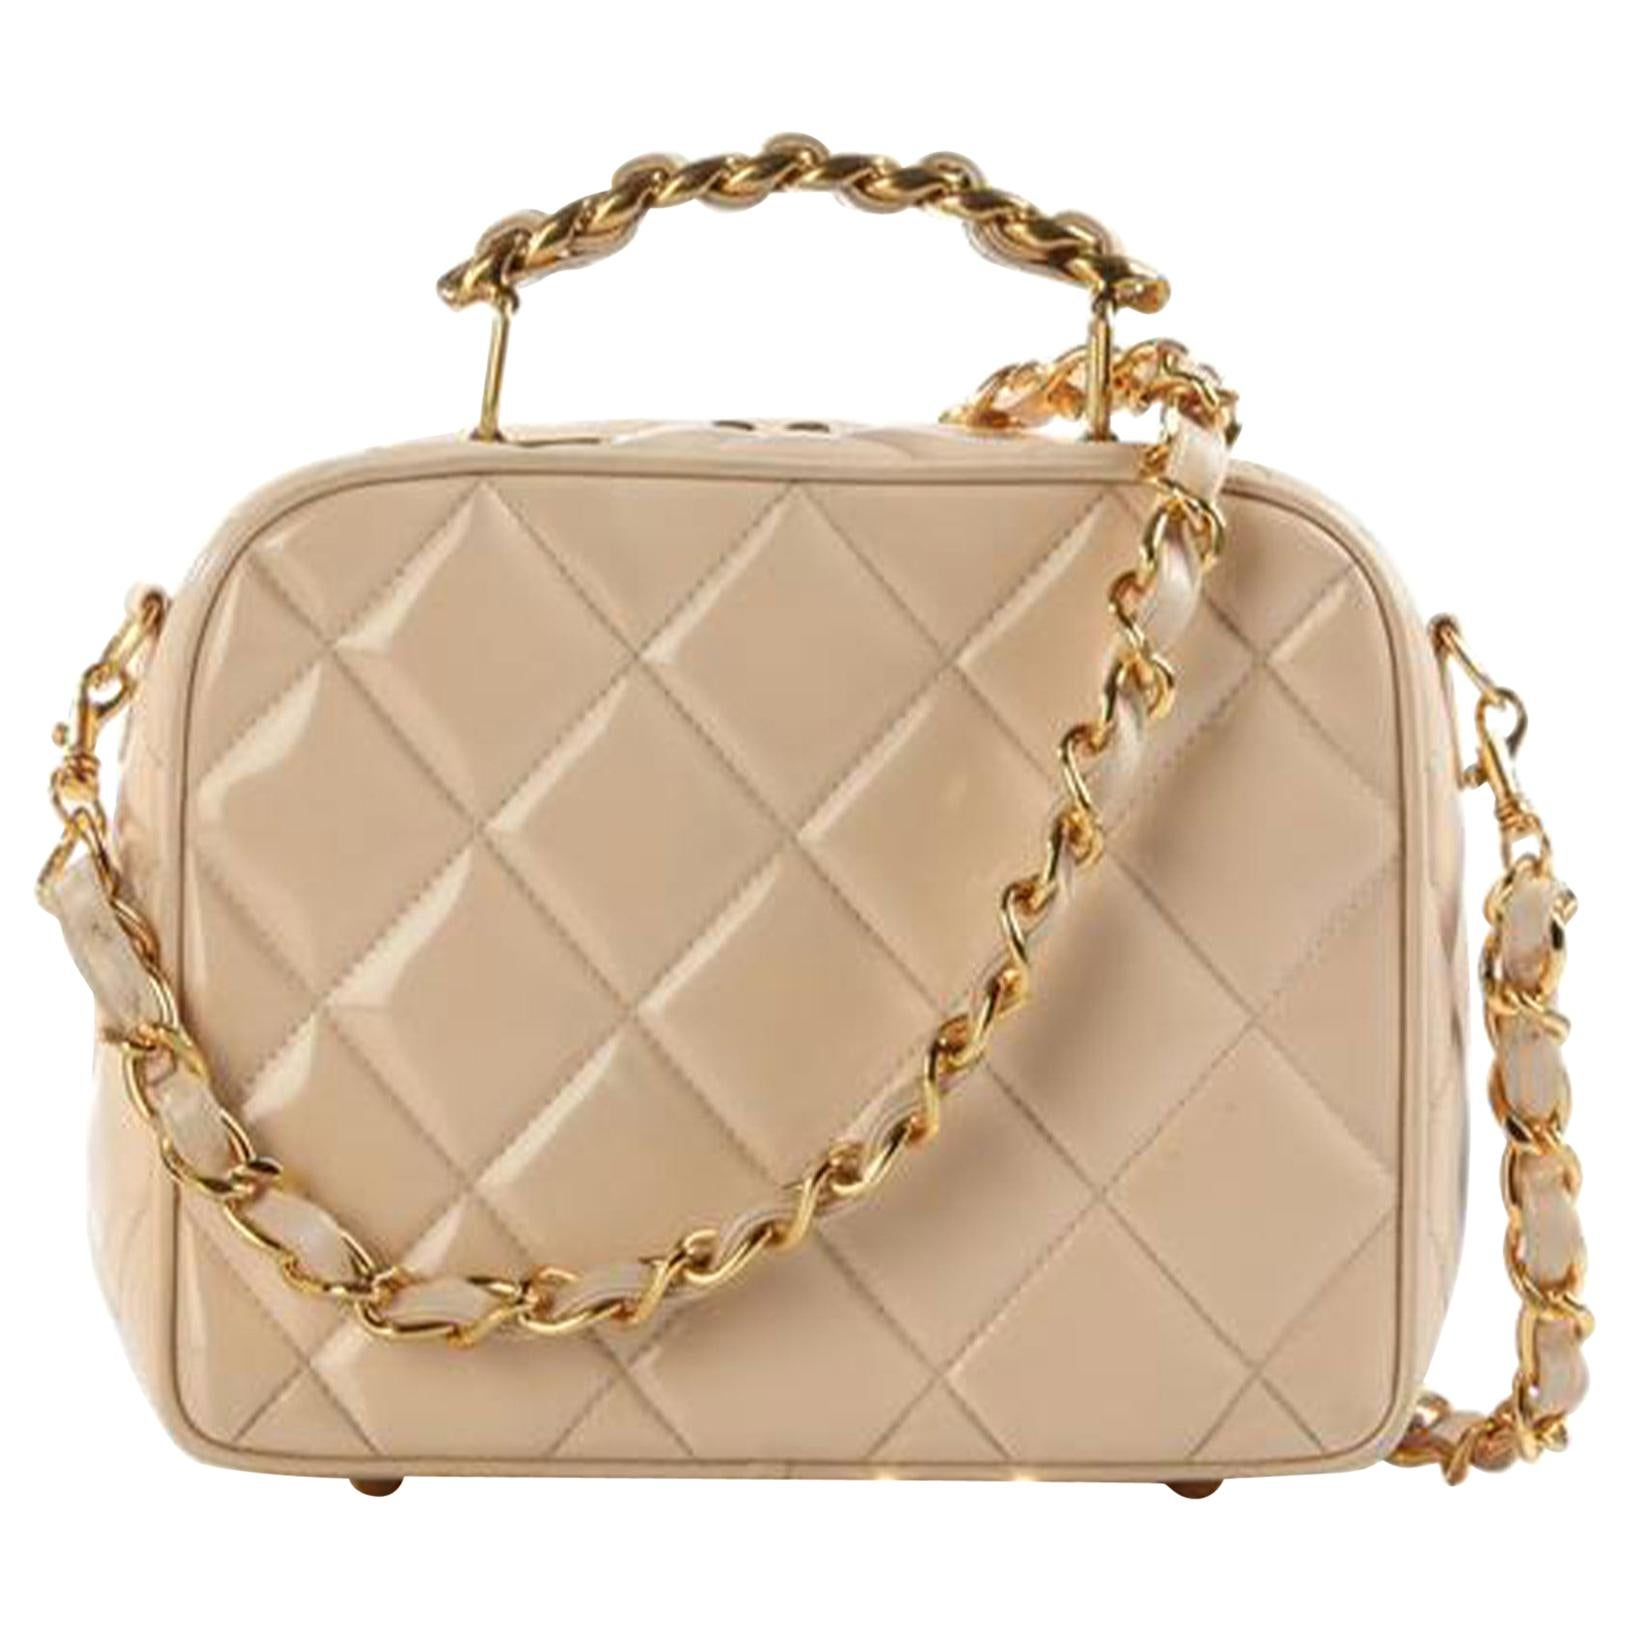 Chanel Camera Mini Quilted Vintage Rare Beige Nude Patent Cross Body Bag